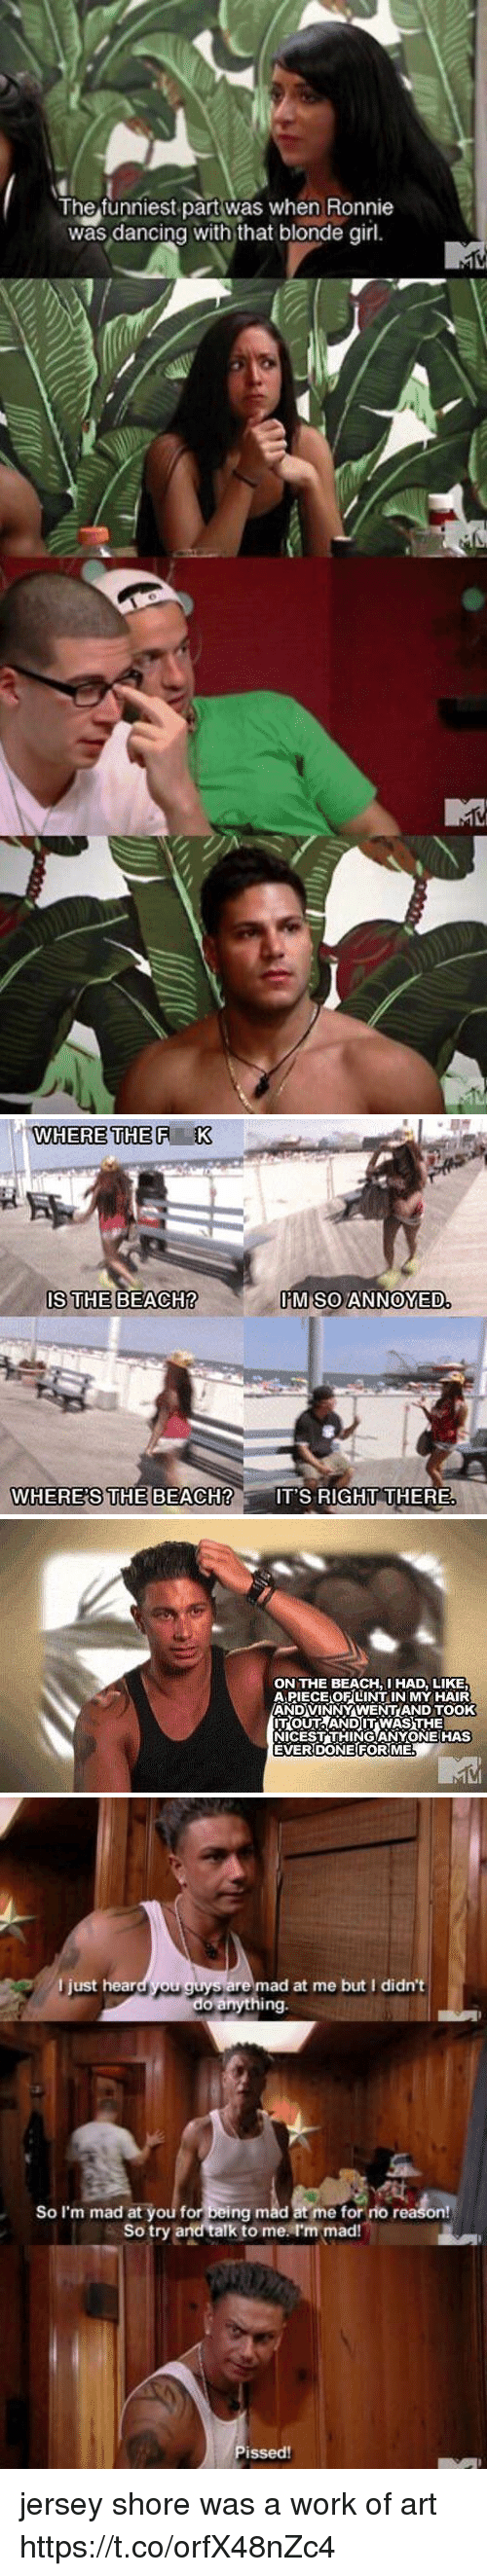 blonde girl: The funniest part was when Honnie  was dancing with that blonde girl.   WHERE THE F  K  IS THE BEACH?  IM SO ANNOYED  WHERES THE BEACH?  IT'S RIGHT THERE   ONTHE BEACH, I HAD, LIKE  APIECEOF LINT IN MY HAIR  ANDVINNYAWENTAND TOOK  ITOUTTAANDITWASUHE  NICEST THINGANYONE HAS  EVER DONE FOR ME   l just hear  ou guys are mad at me but I didn't  do anything.  So I'm mad at you for being mad at me for no reason!  So try and talk to me I'm mad!  Pissed! jersey shore was a work of art https://t.co/orfX48nZc4